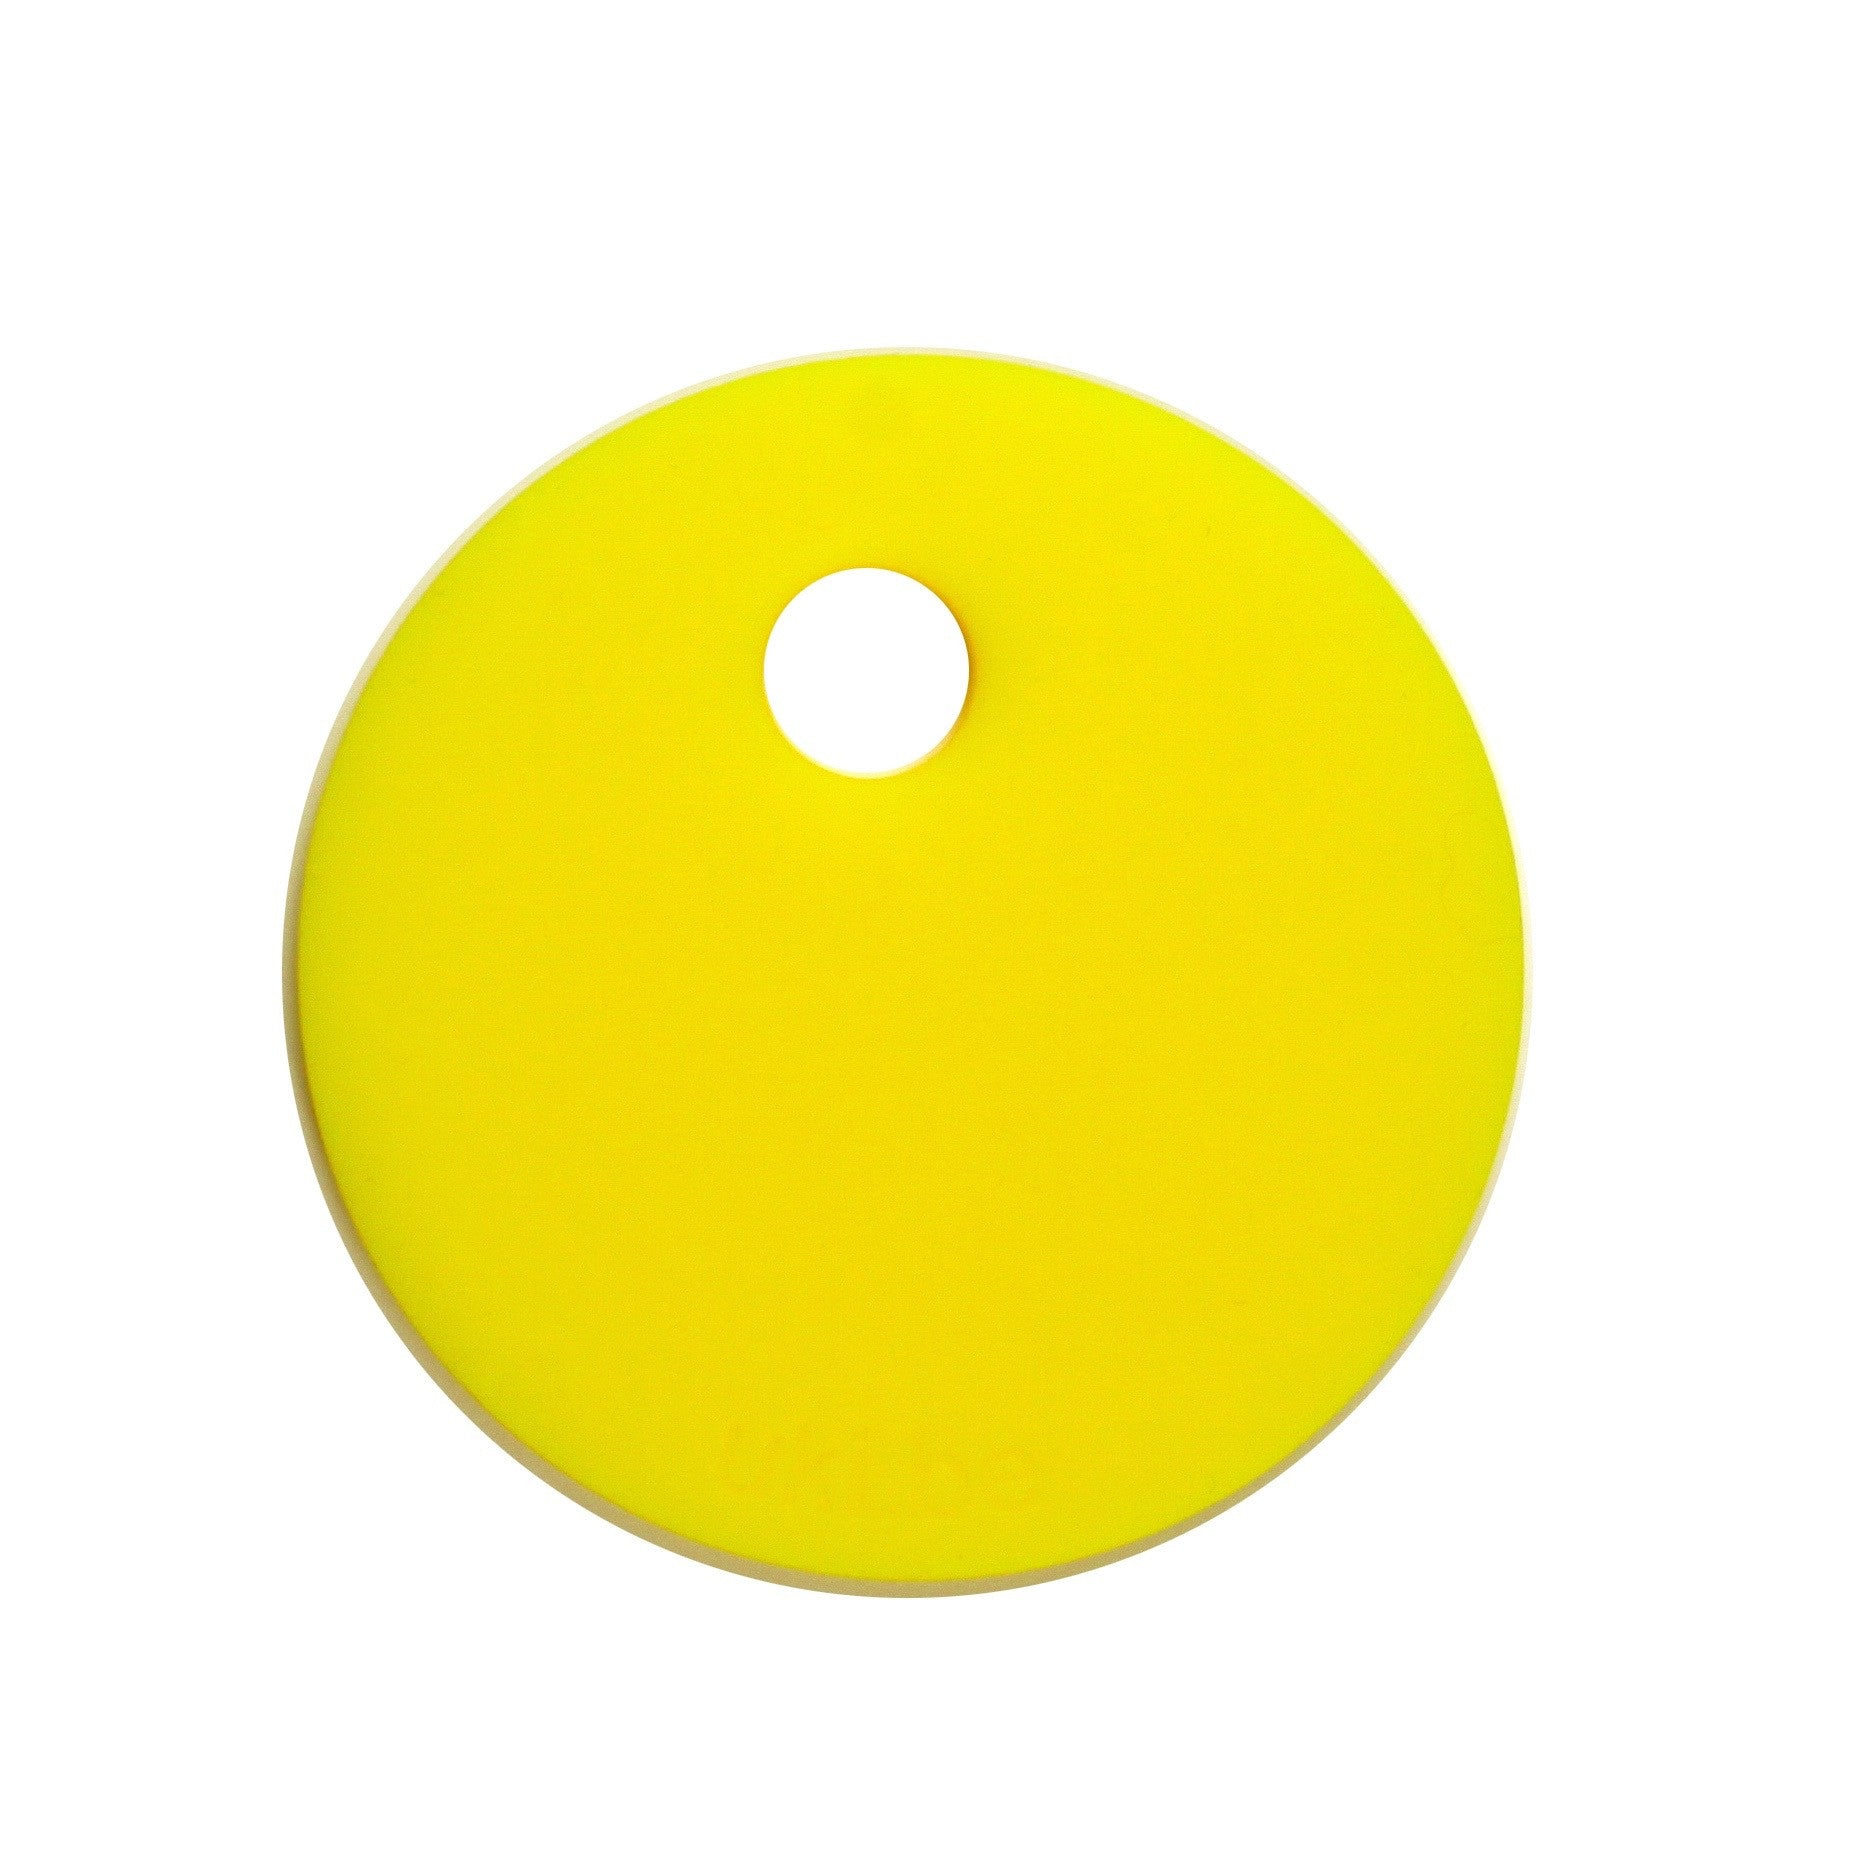 Neon circle, Complies with EU safety standard EN71, Age 0+ Suitable from birth to toddler, British Design, High quality, Hygienically protected,